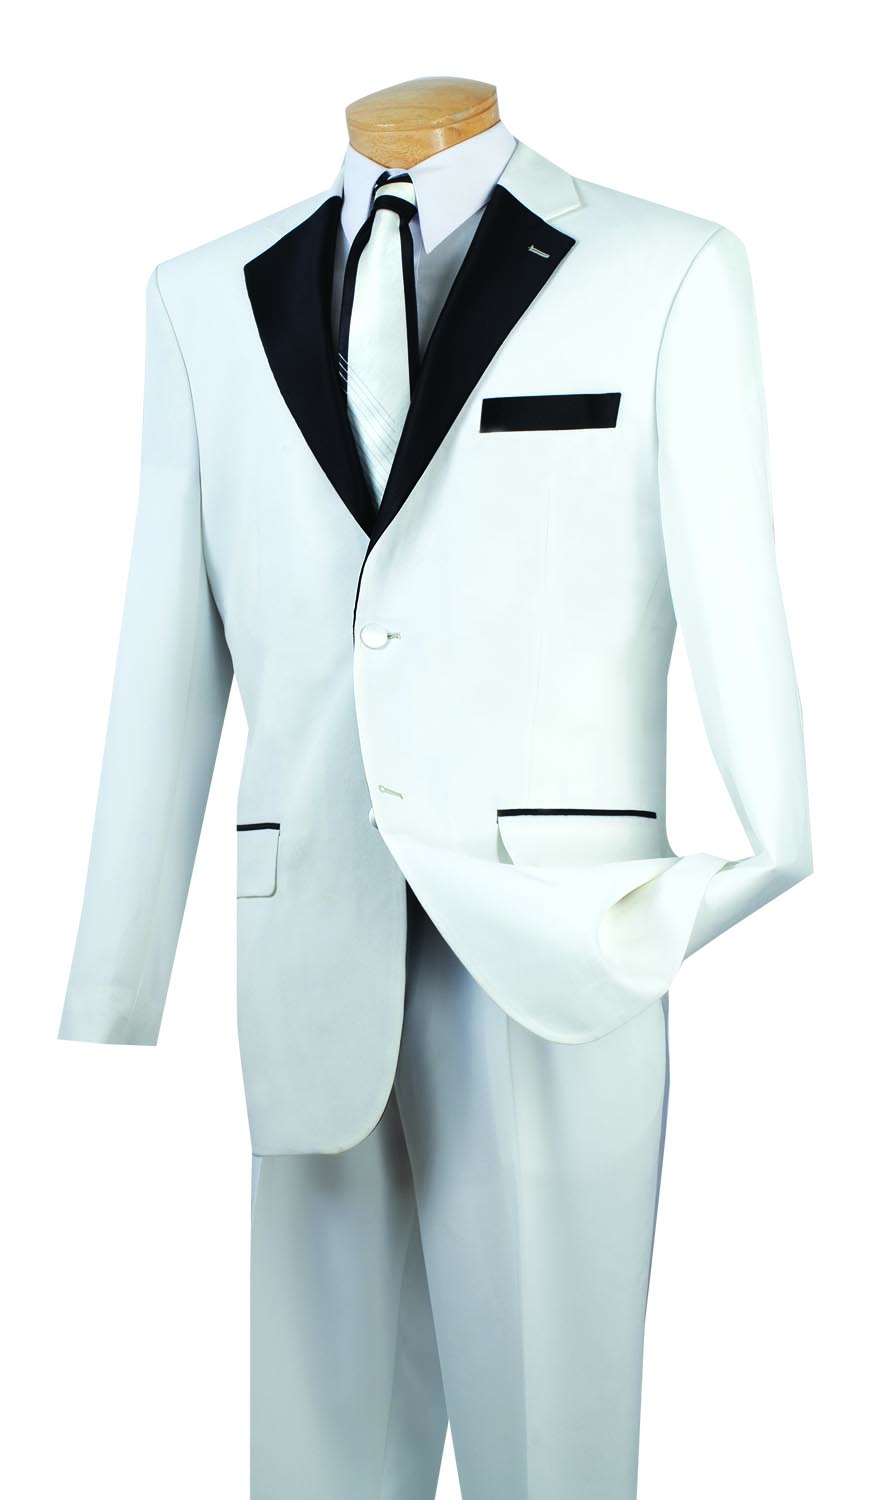 Vinci Tuxedo T-2FF-White - Church Suits For Less